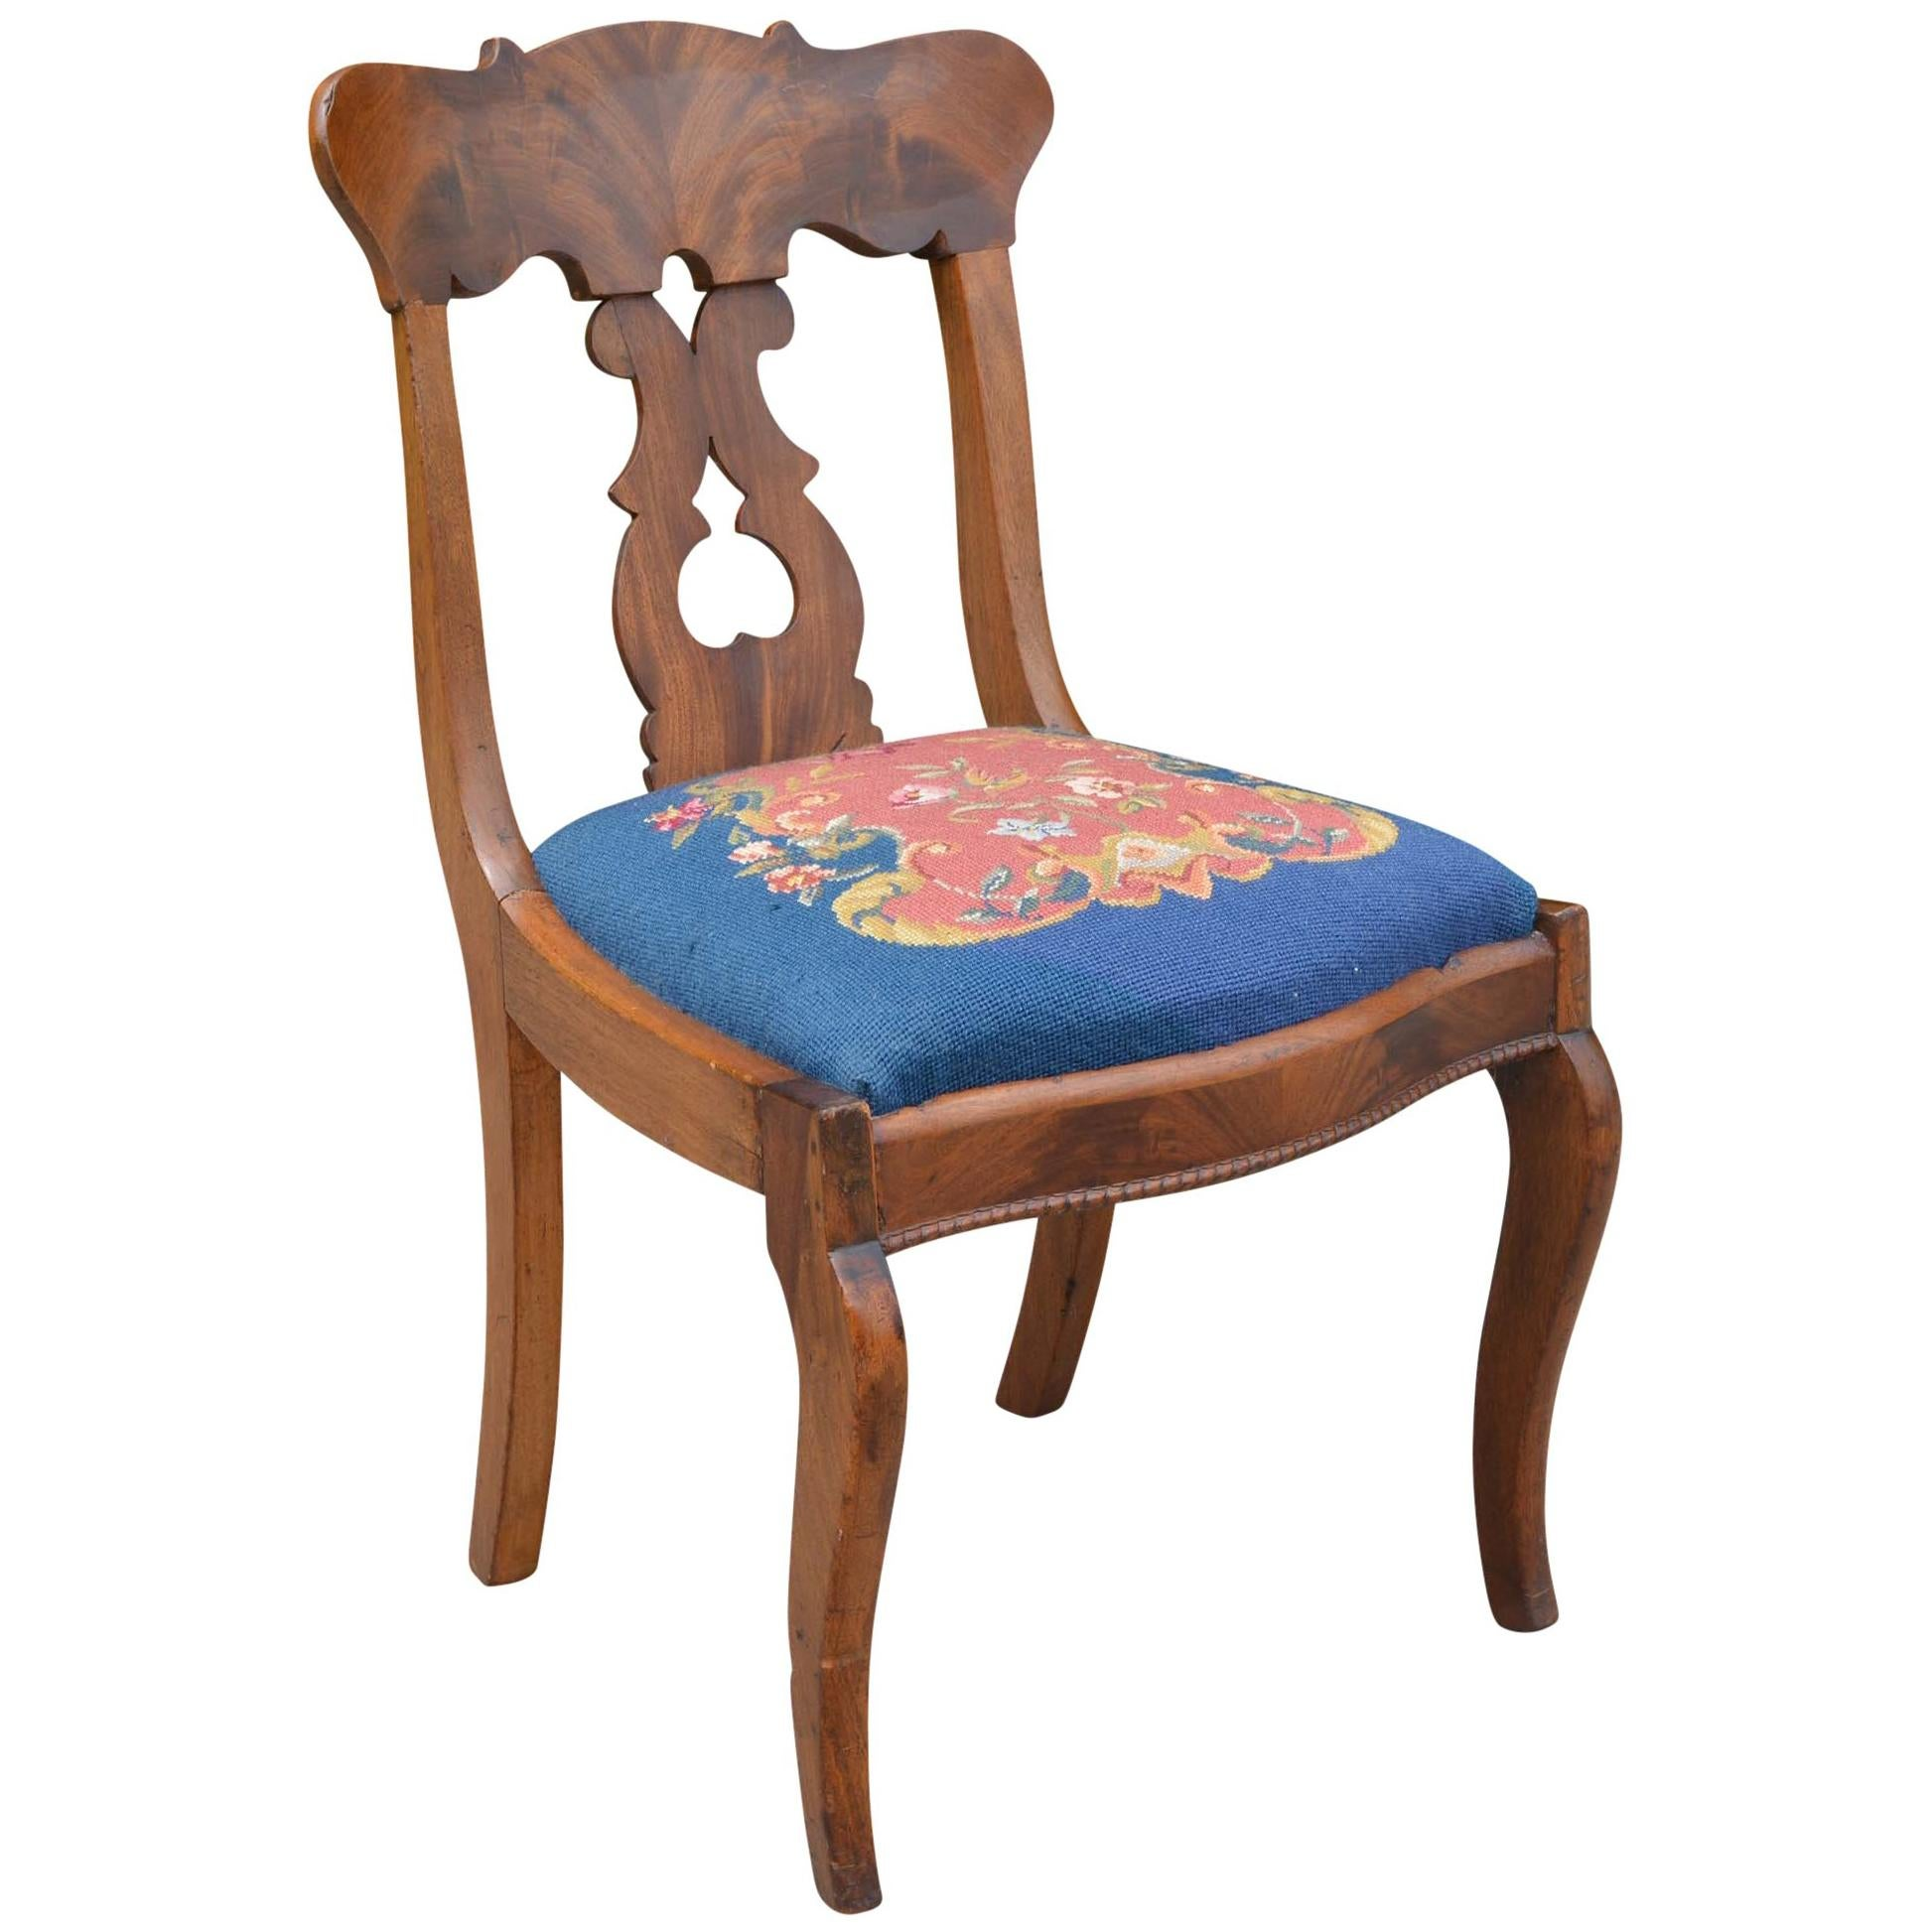 Charmant Victorian Parlor Chair With Needlepoint Seat